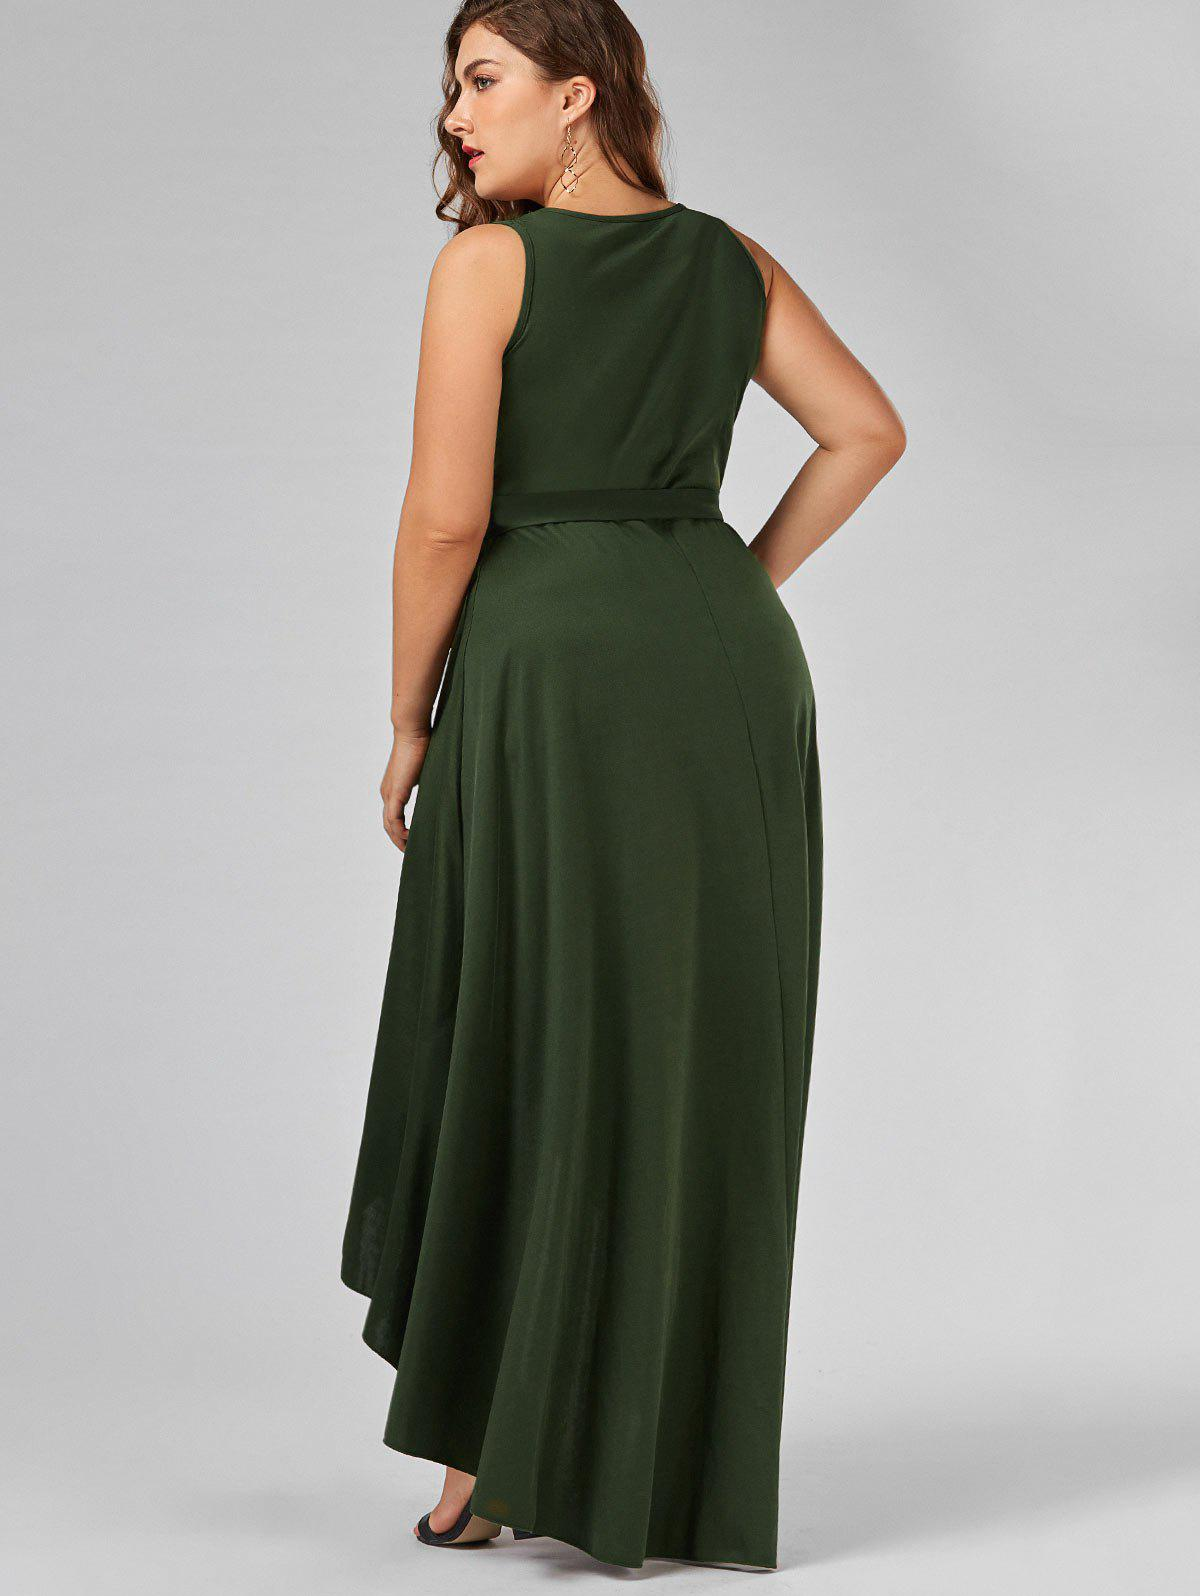 25aed55b1ac 2018 V Neck High Low Plus Size Prom Dress ARMY GREEN XL In